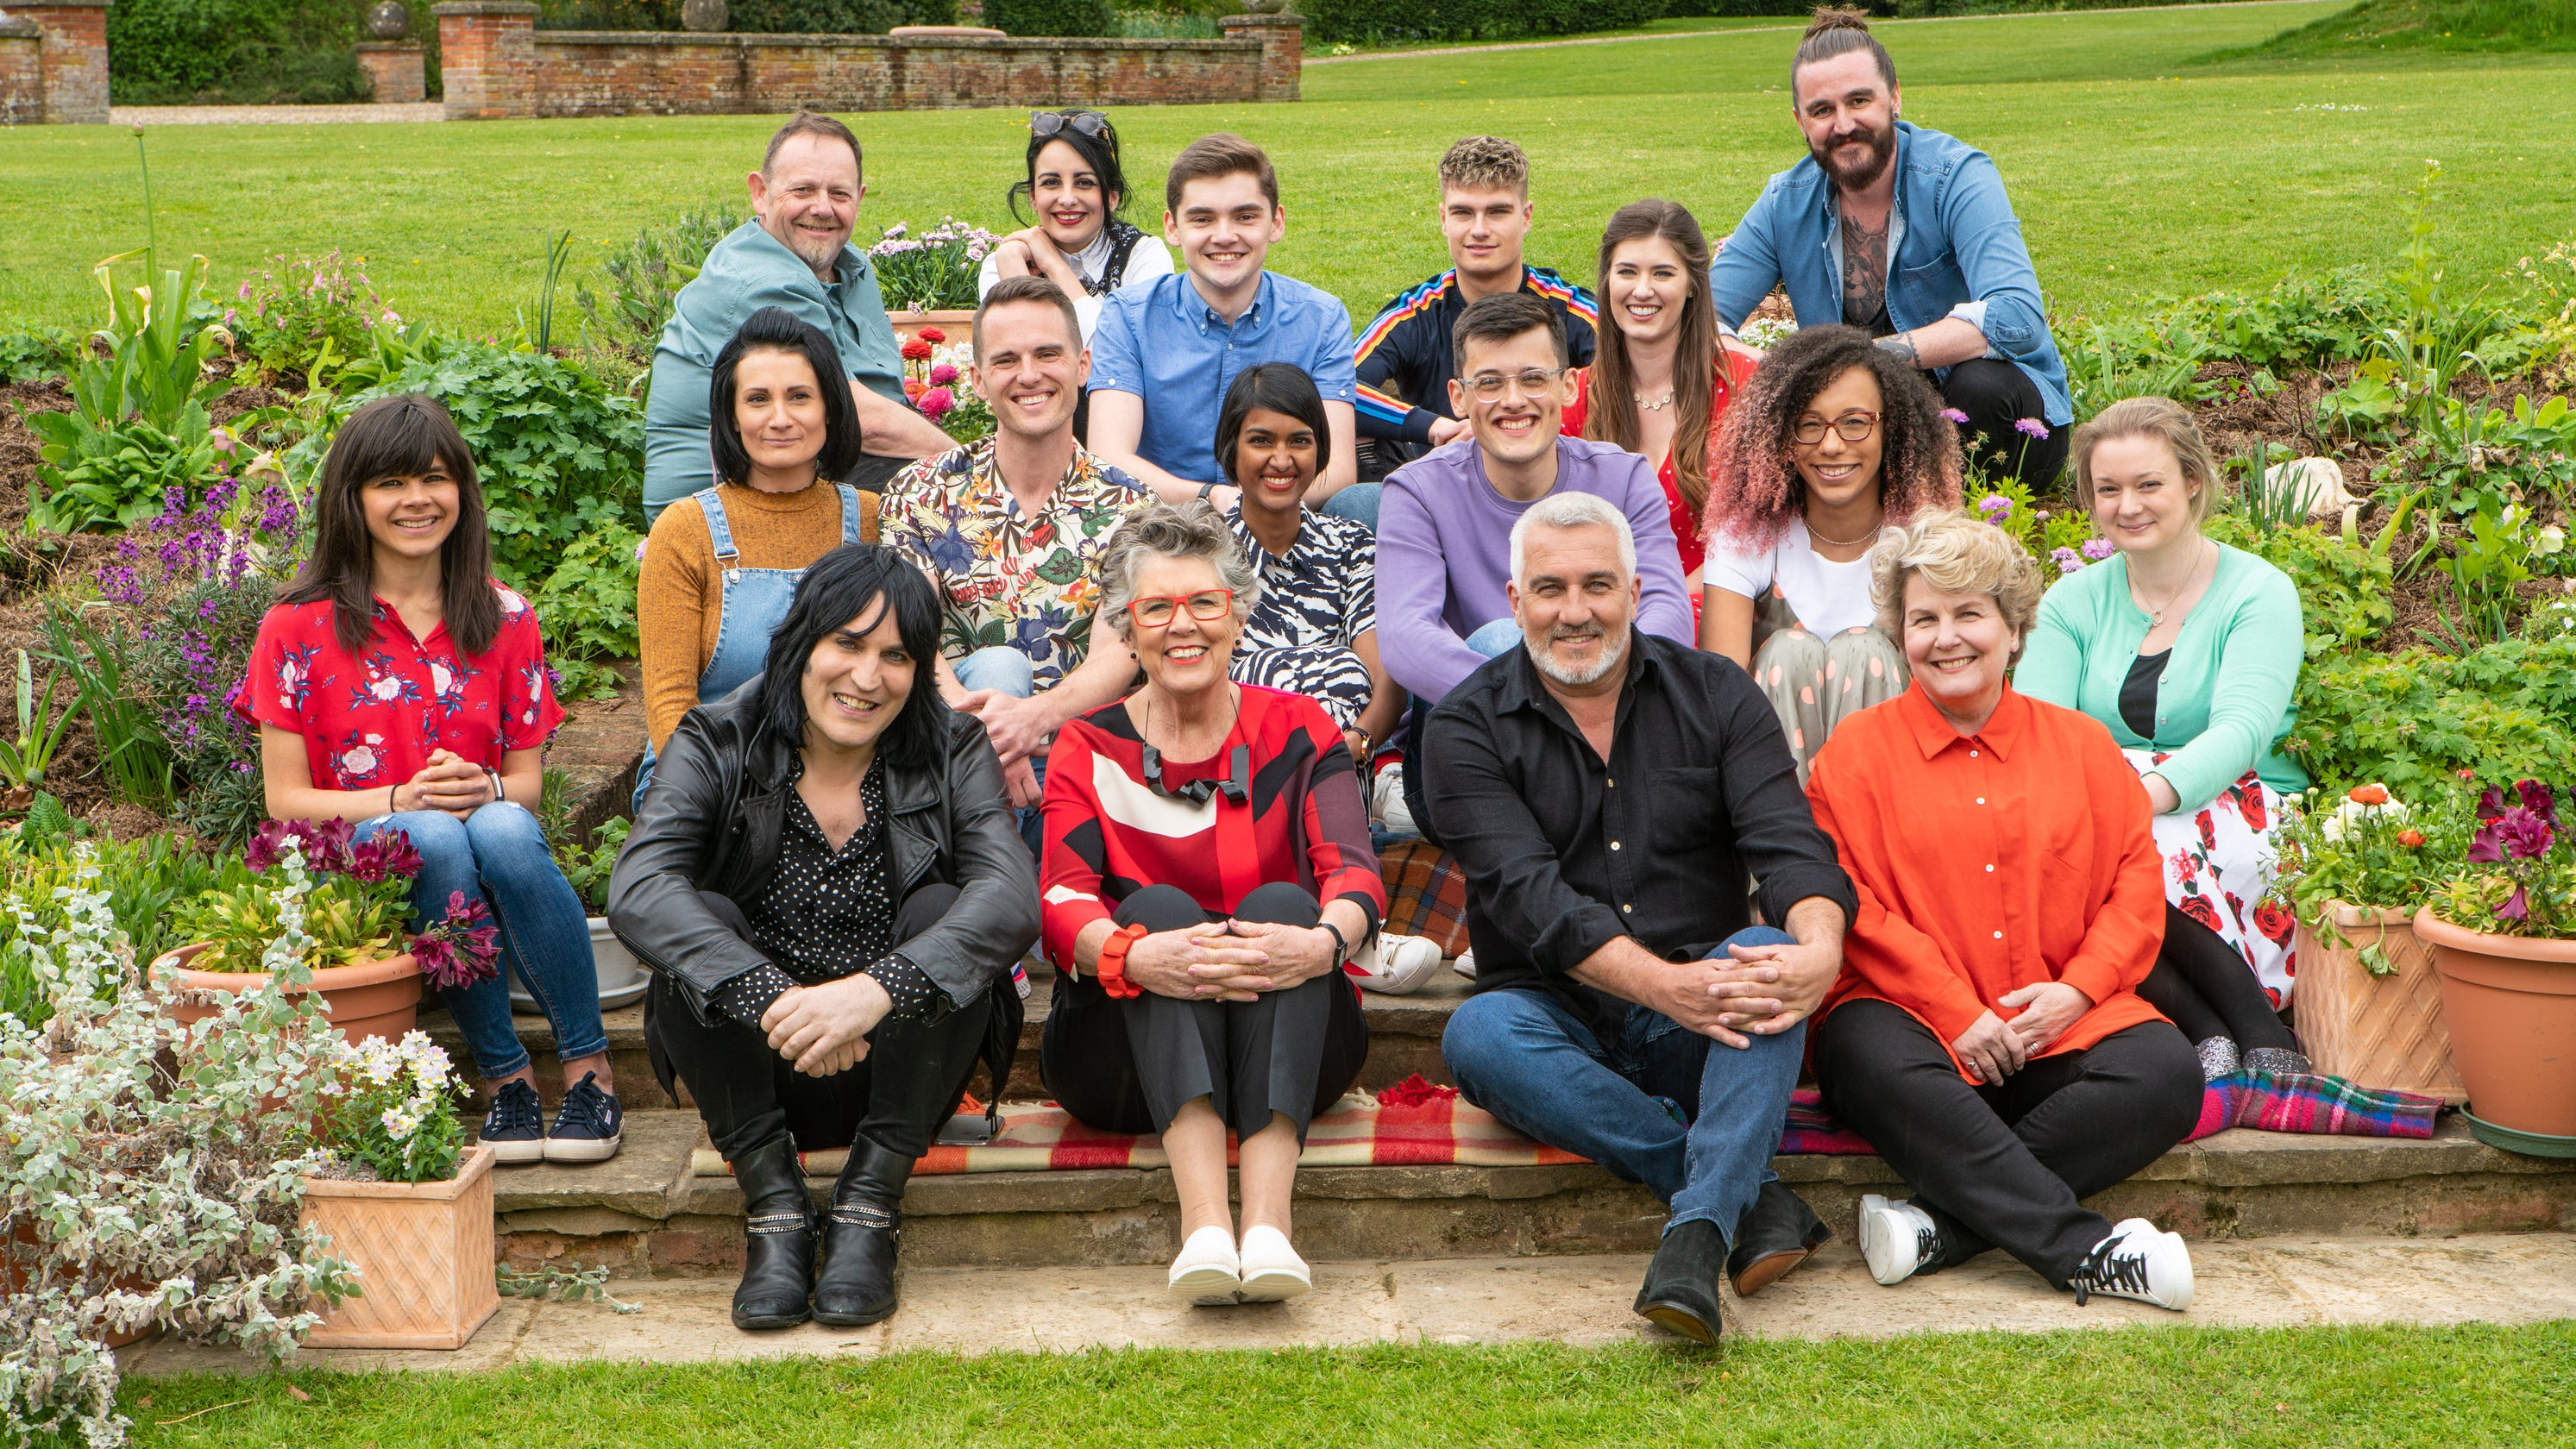 'The Great British Baking Show': New season is a train wreck